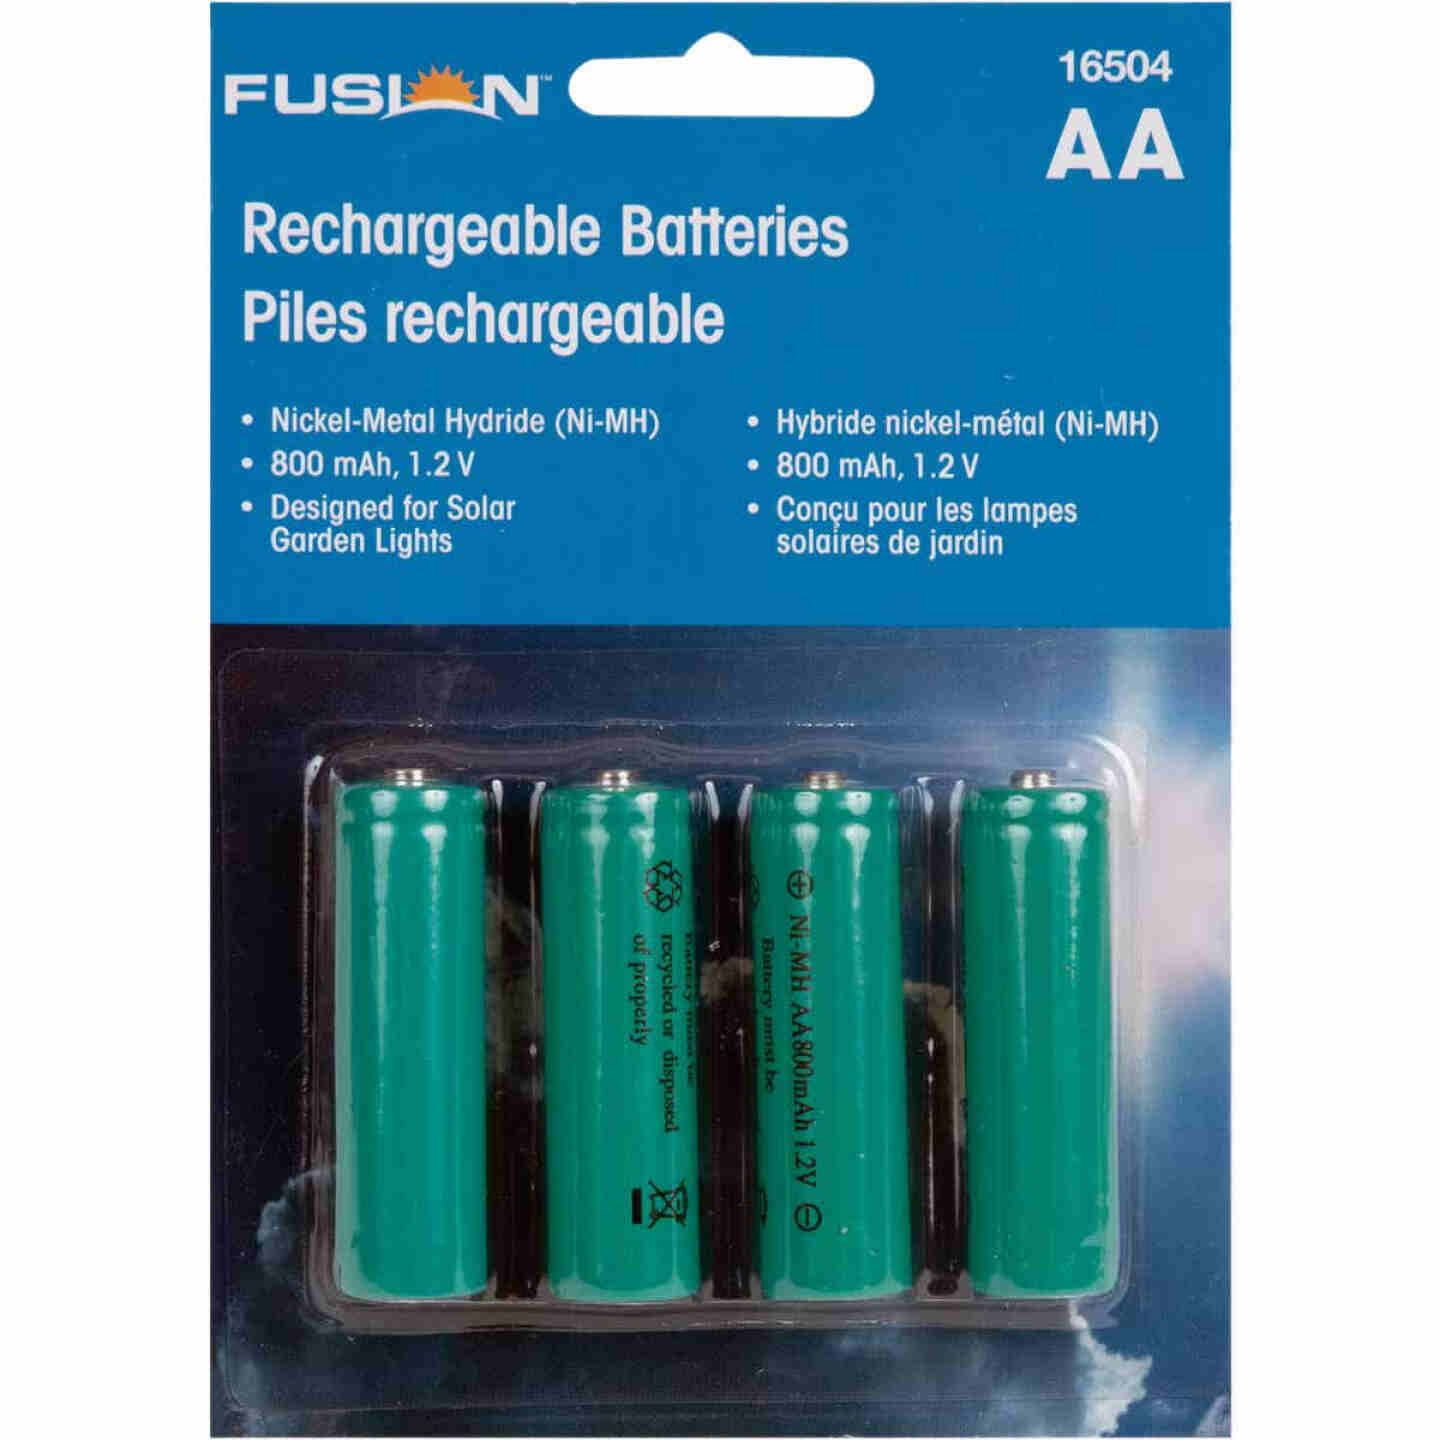 Fusion AA 600 mAh Ni-MH Solar Replacement Battery (4-Pack) Image 1